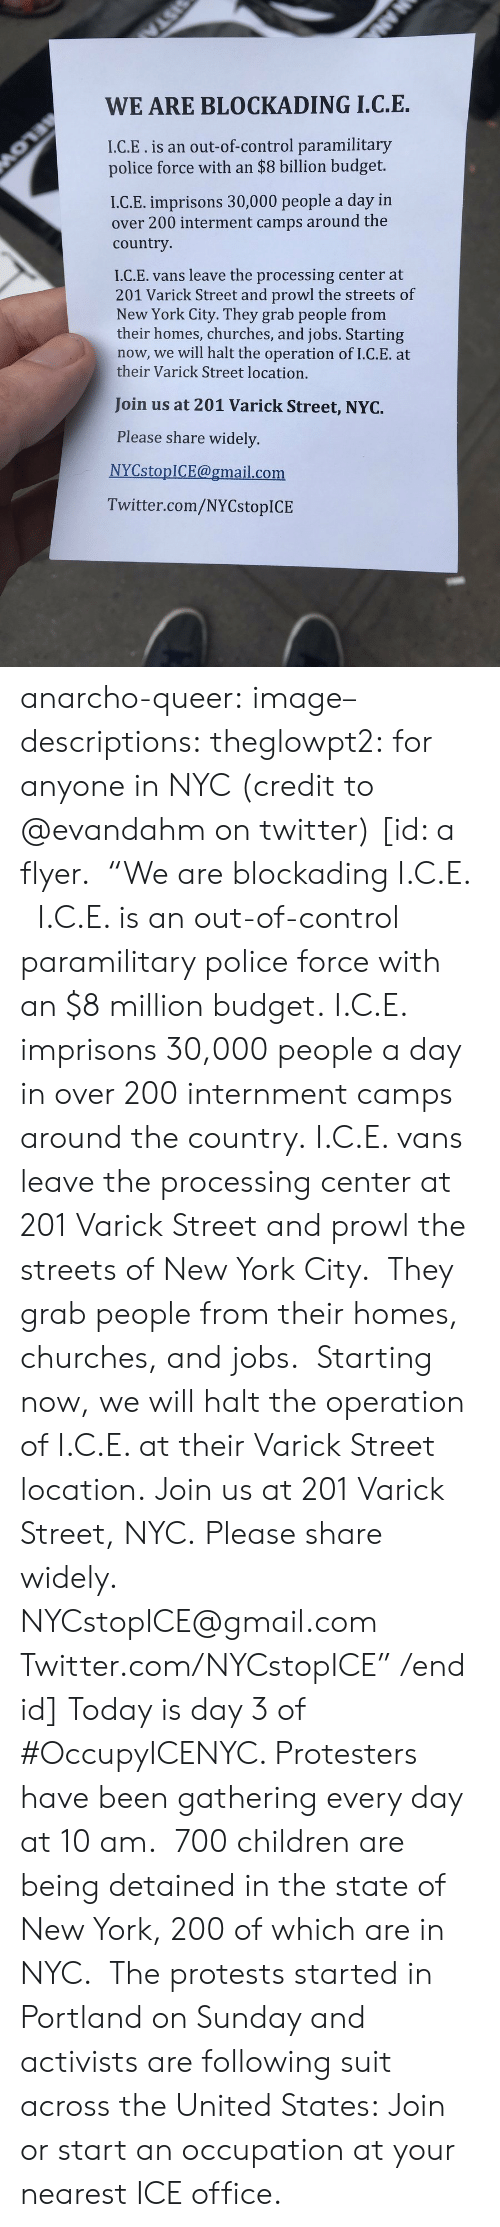 "Protests: WE ARE BLOCKADING I.C.E.  I.C.E.is an out-of-control paramilitary  police force with an $8 billion budget.  I.C.E. imprisons 30,000 people a day in  over 200 interment camps around the  country  I.C.E. vans leave the processing center at  201 Varick Street and prowl the streets of  New York City. They grab people from  their homes, churches, and jobs. Starting  now, we will halt the operation of I.C.E. at  their Varick Street location.  Join us at 201 Varick Street, NYC.  Please share widely.  NYCstopICE@gmail.com  Twitter.com/NYCstopICE anarcho-queer: image–descriptions:  theglowpt2: for anyone in NYC (credit to @evandahm on twitter) [id: a flyer.  ""We are blockading I.C.E.   I.C.E. is an out-of-control paramilitary police force with an $8 million budget. I.C.E. imprisons 30,000 people a day in over 200 internment camps around the country. I.C.E. vans leave the processing center at 201 Varick Street and prowl the streets of New York City.  They grab people from their homes, churches, and jobs.  Starting now, we will halt the operation of I.C.E. at their Varick Street location. Join us at 201 Varick Street, NYC. Please share widely. NYCstopICE@gmail.com Twitter.com/NYCstopICE"" /end id]  Today is day 3 of #OccupyICENYC. Protesters have been gathering every day at 10 am.  700 children are being detained in the state of New York, 200 of which are in NYC.  The protests started in Portland on Sunday and activists are following suit across the United States: Join or start an occupation at your nearest ICE office."